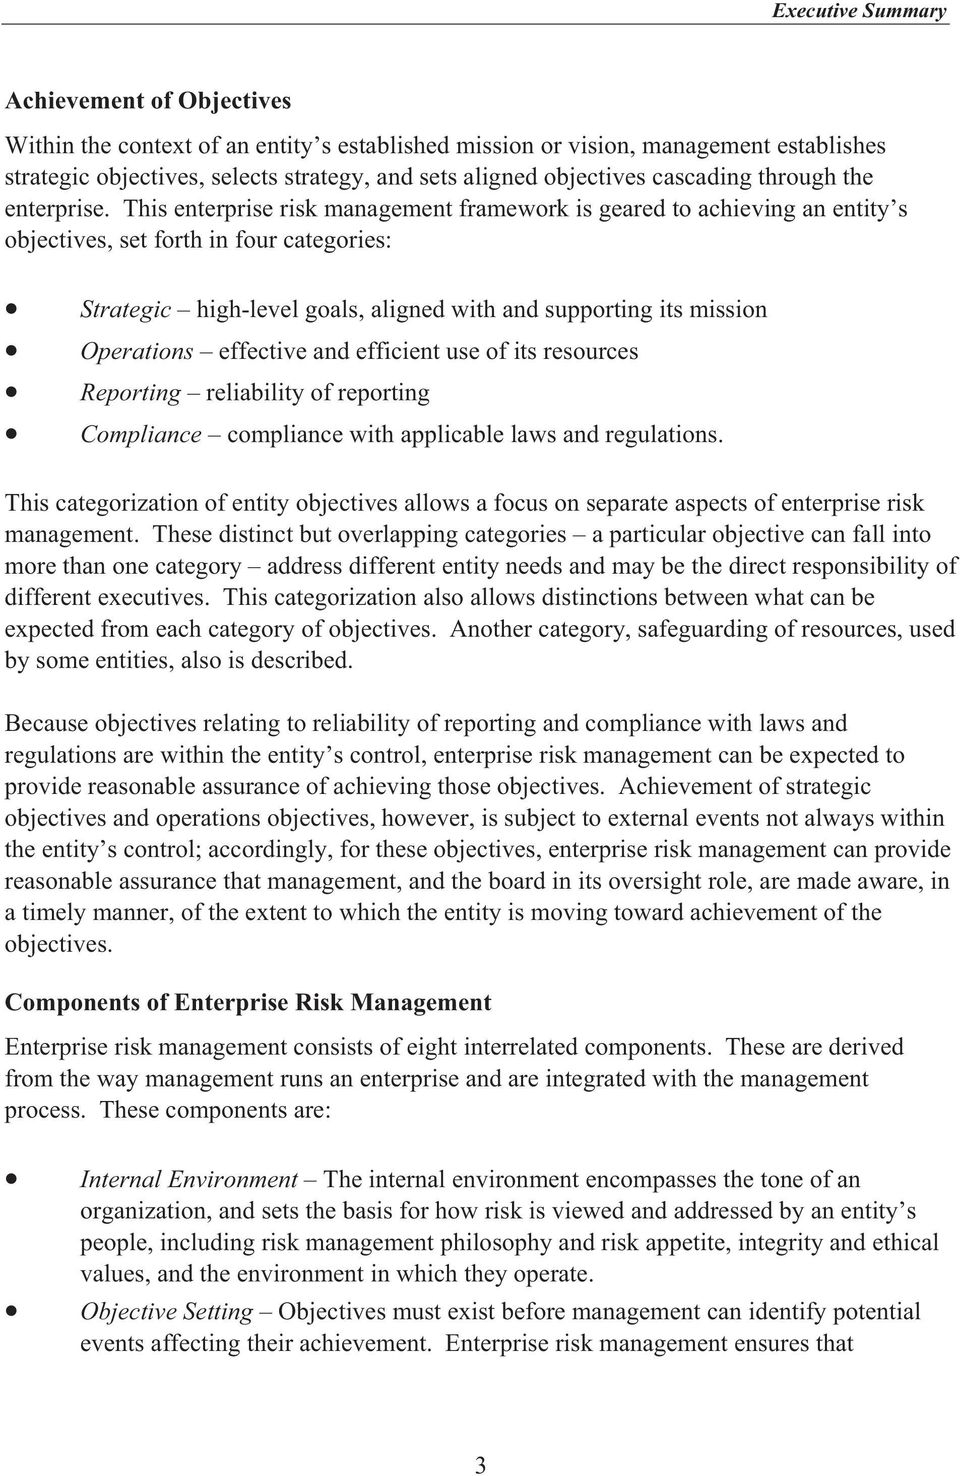 This enterprise risk management framework is geared to achieving an entity s objectives, set forth in four categories: Strategic high-level goals, aligned with and supporting its mission Operations